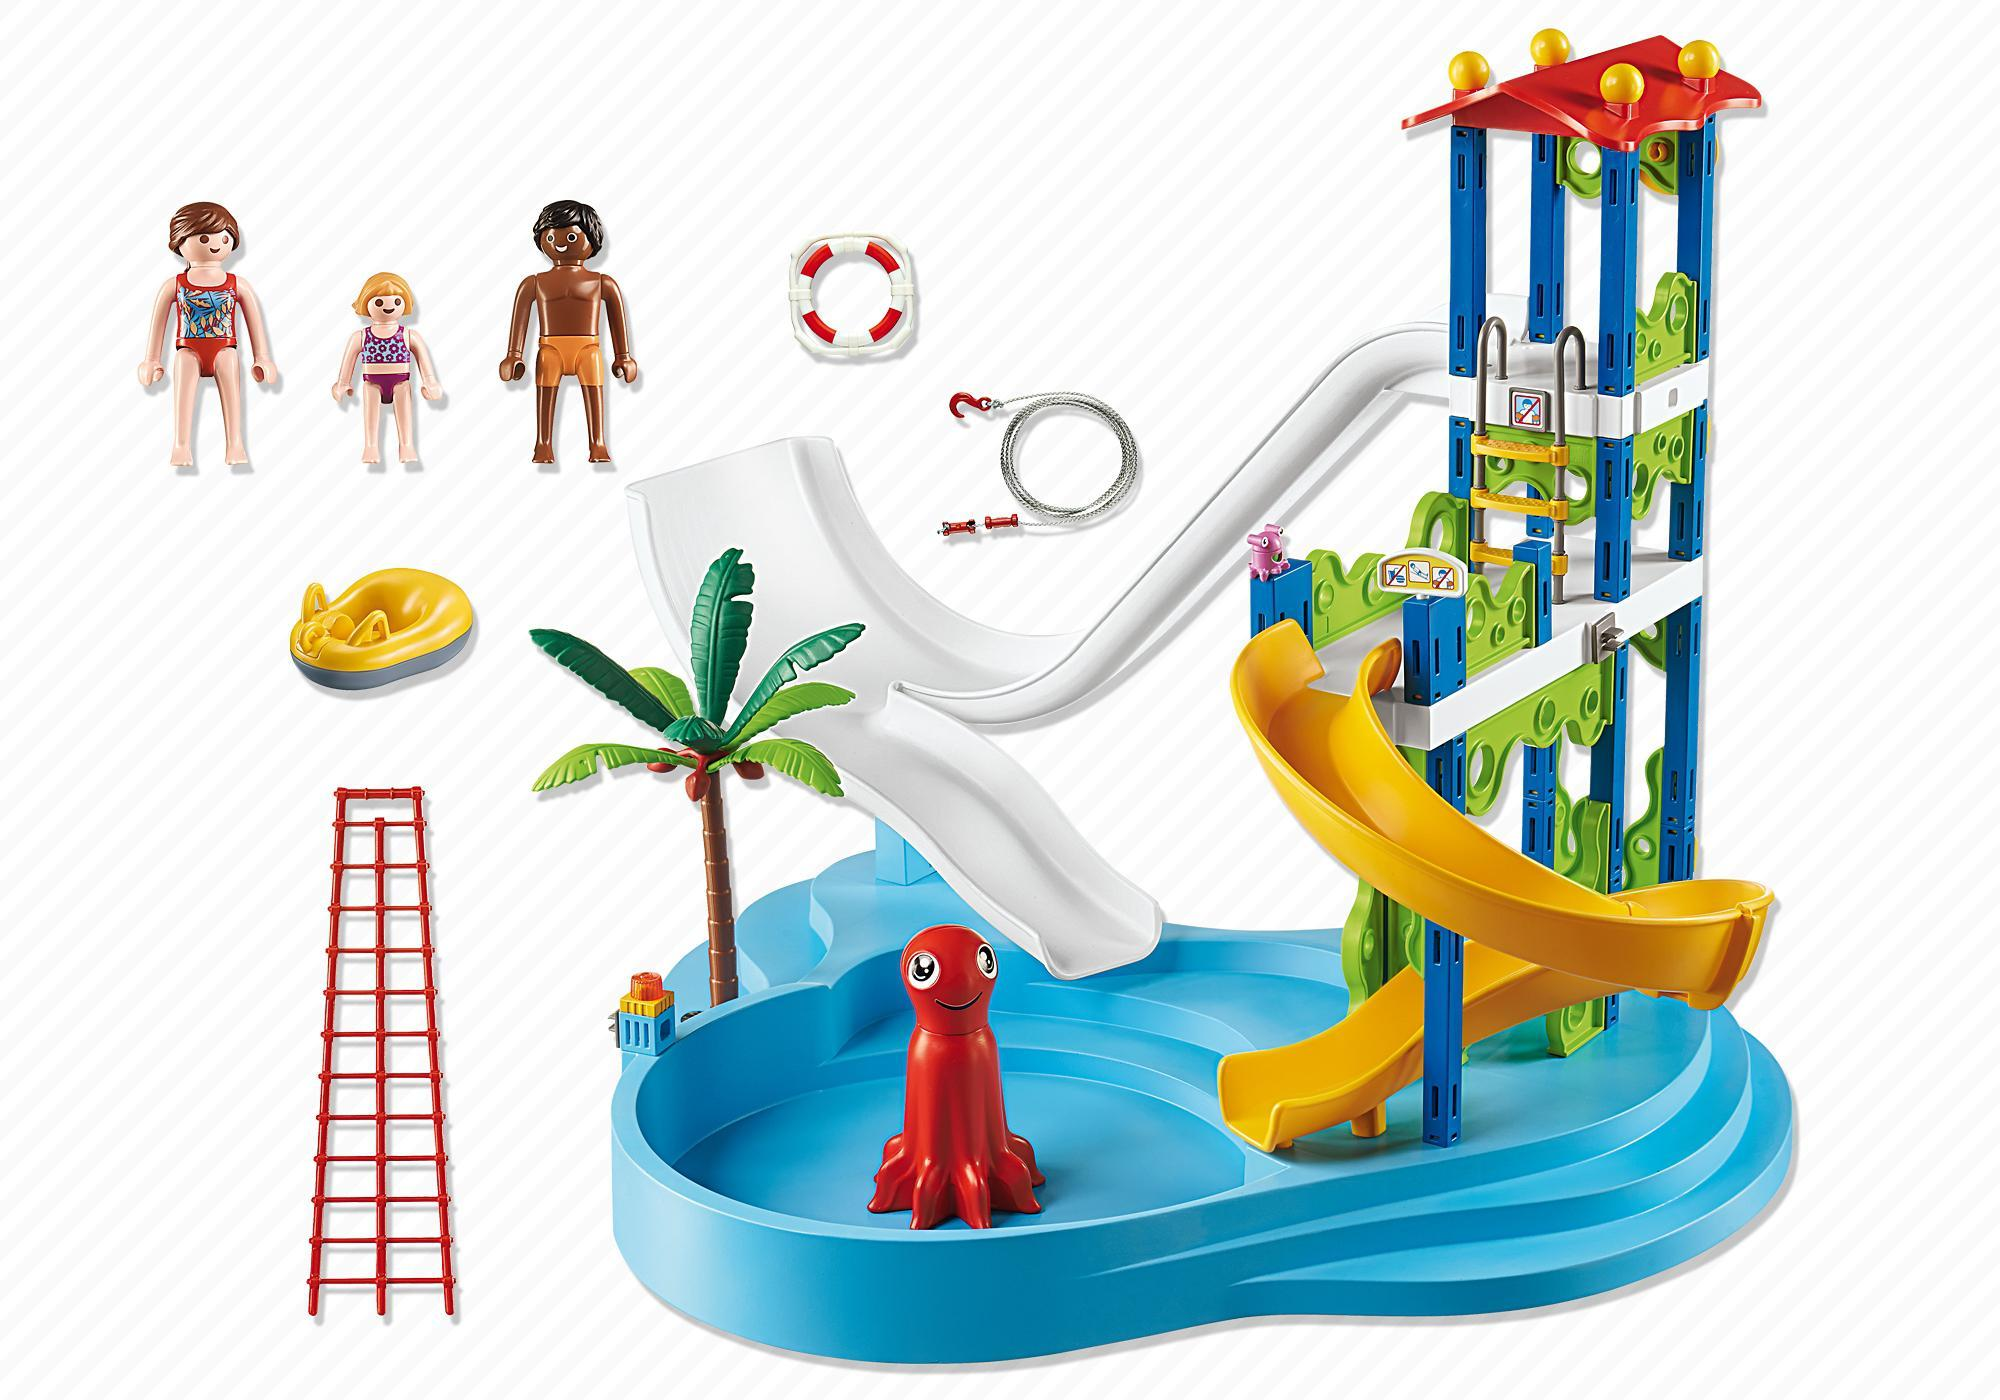 http://media.playmobil.com/i/playmobil/6669_product_box_back/Parc aquatique avec toboggans géants